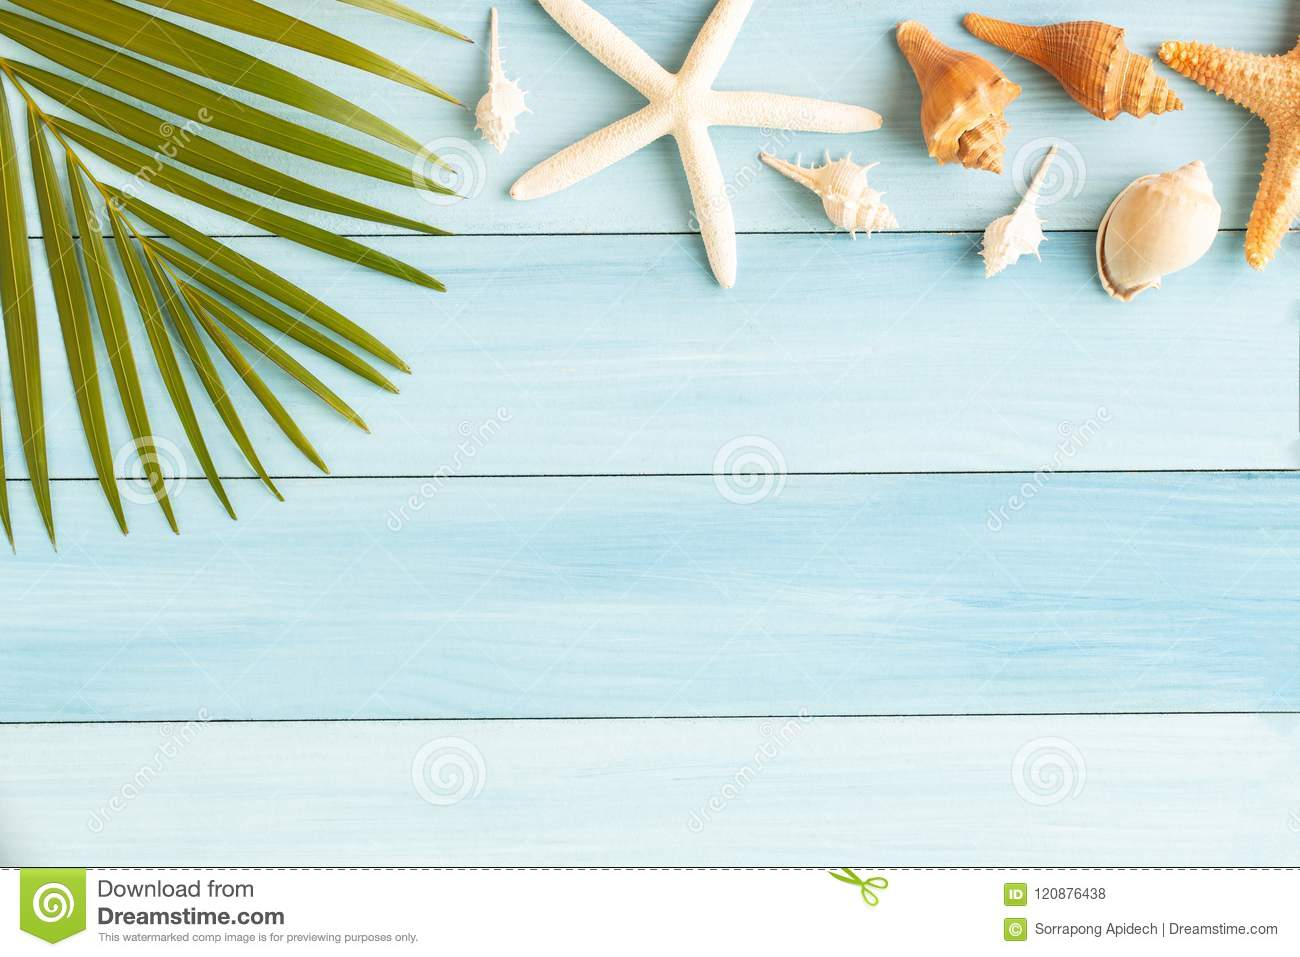 Flat lay photo coconut leaf and seashell on wood background , summer concept top view and copy space for montage your product